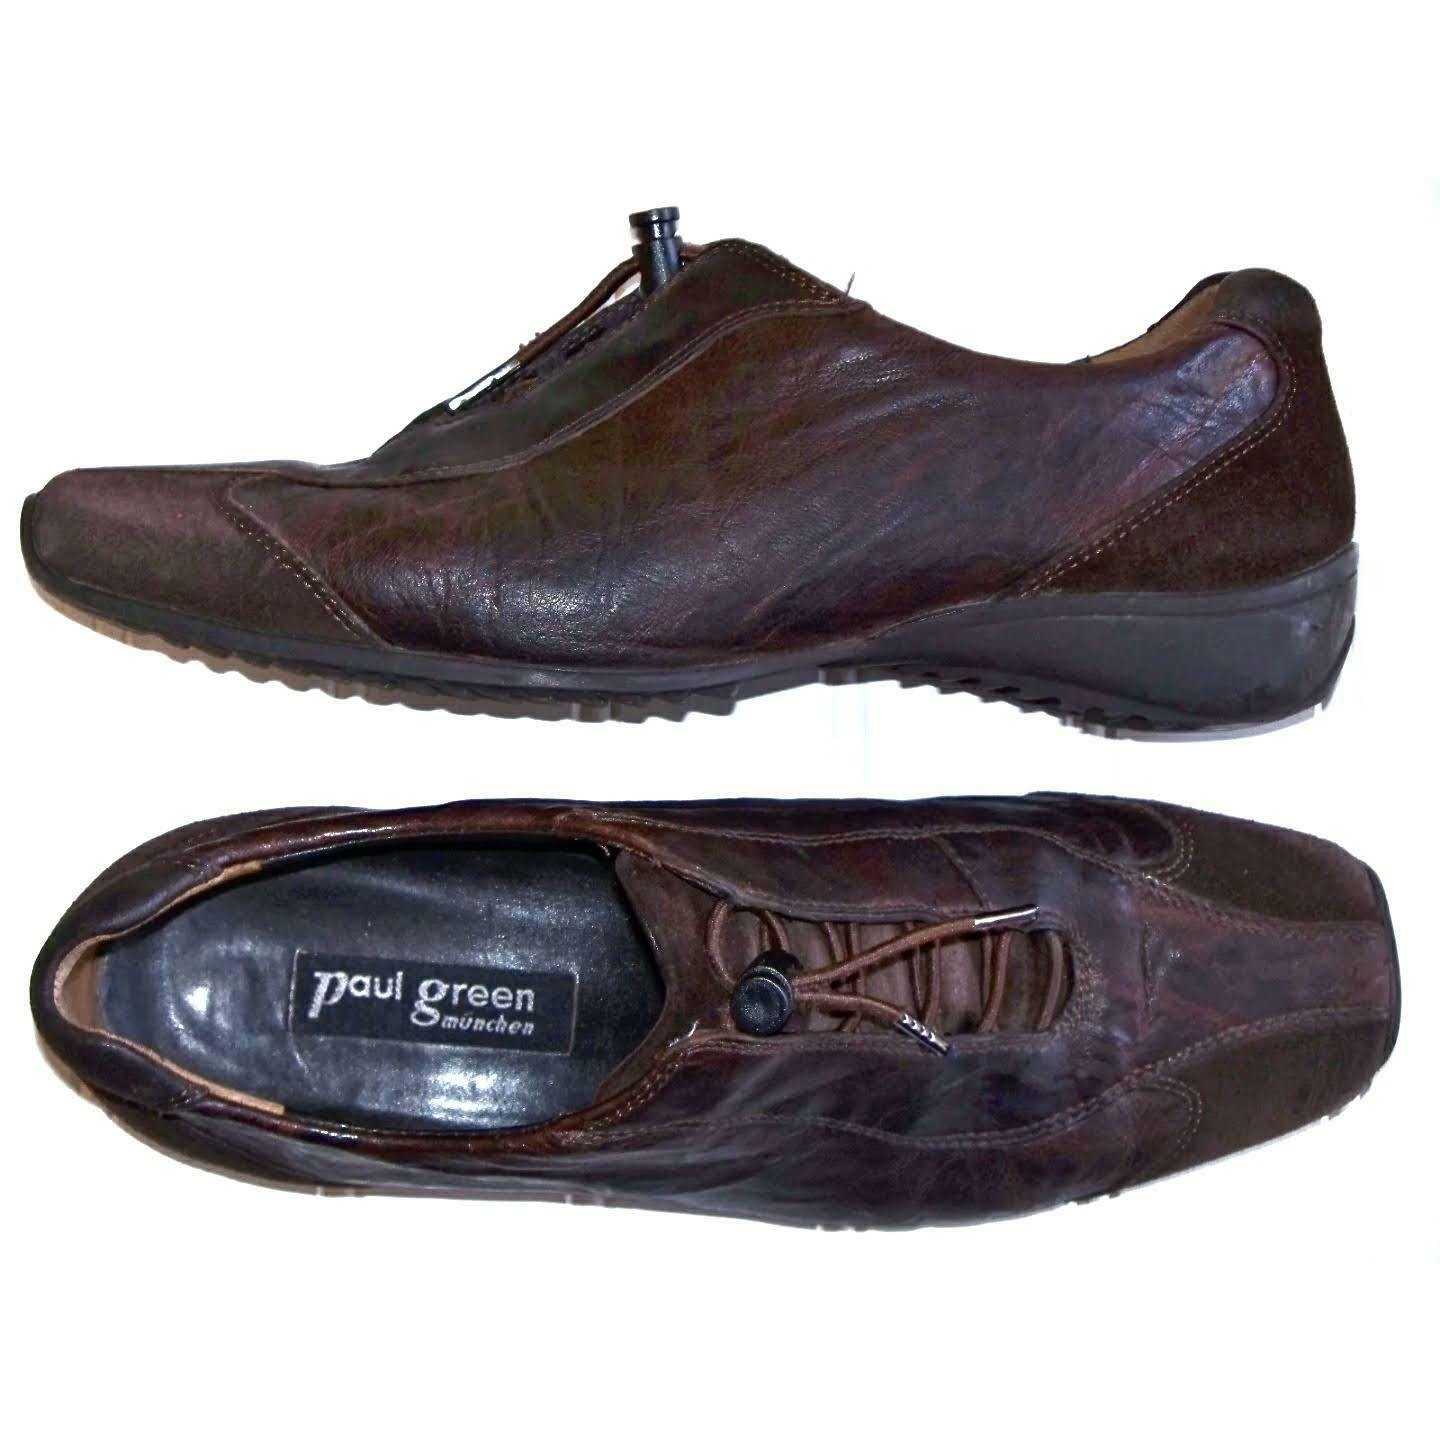 Paul vert Suede Cuir marron Combo Oxford Baskets Taille 4 6.5